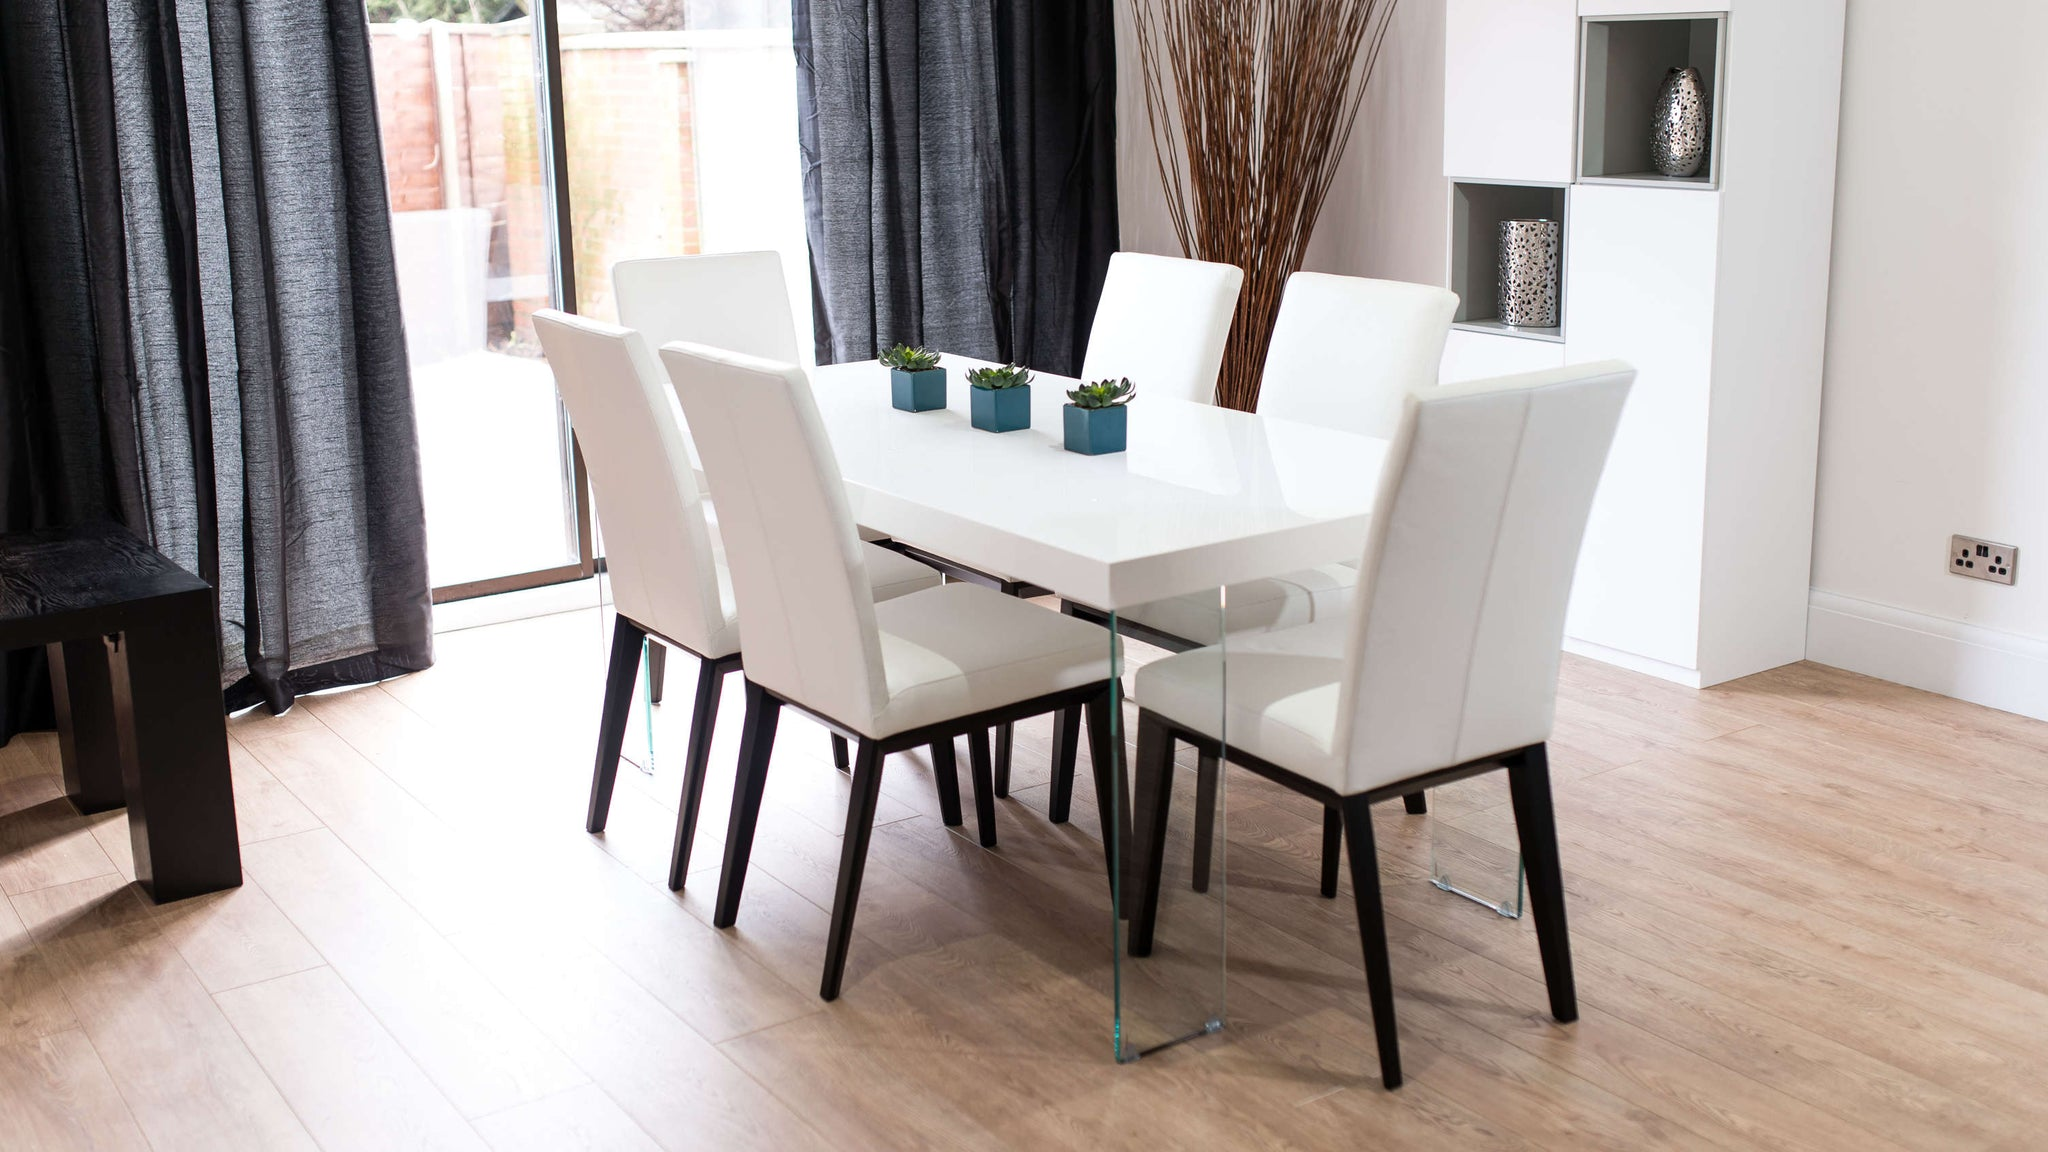 Stylish 6 Seater White Gloss and Real Leather Dining Chairs